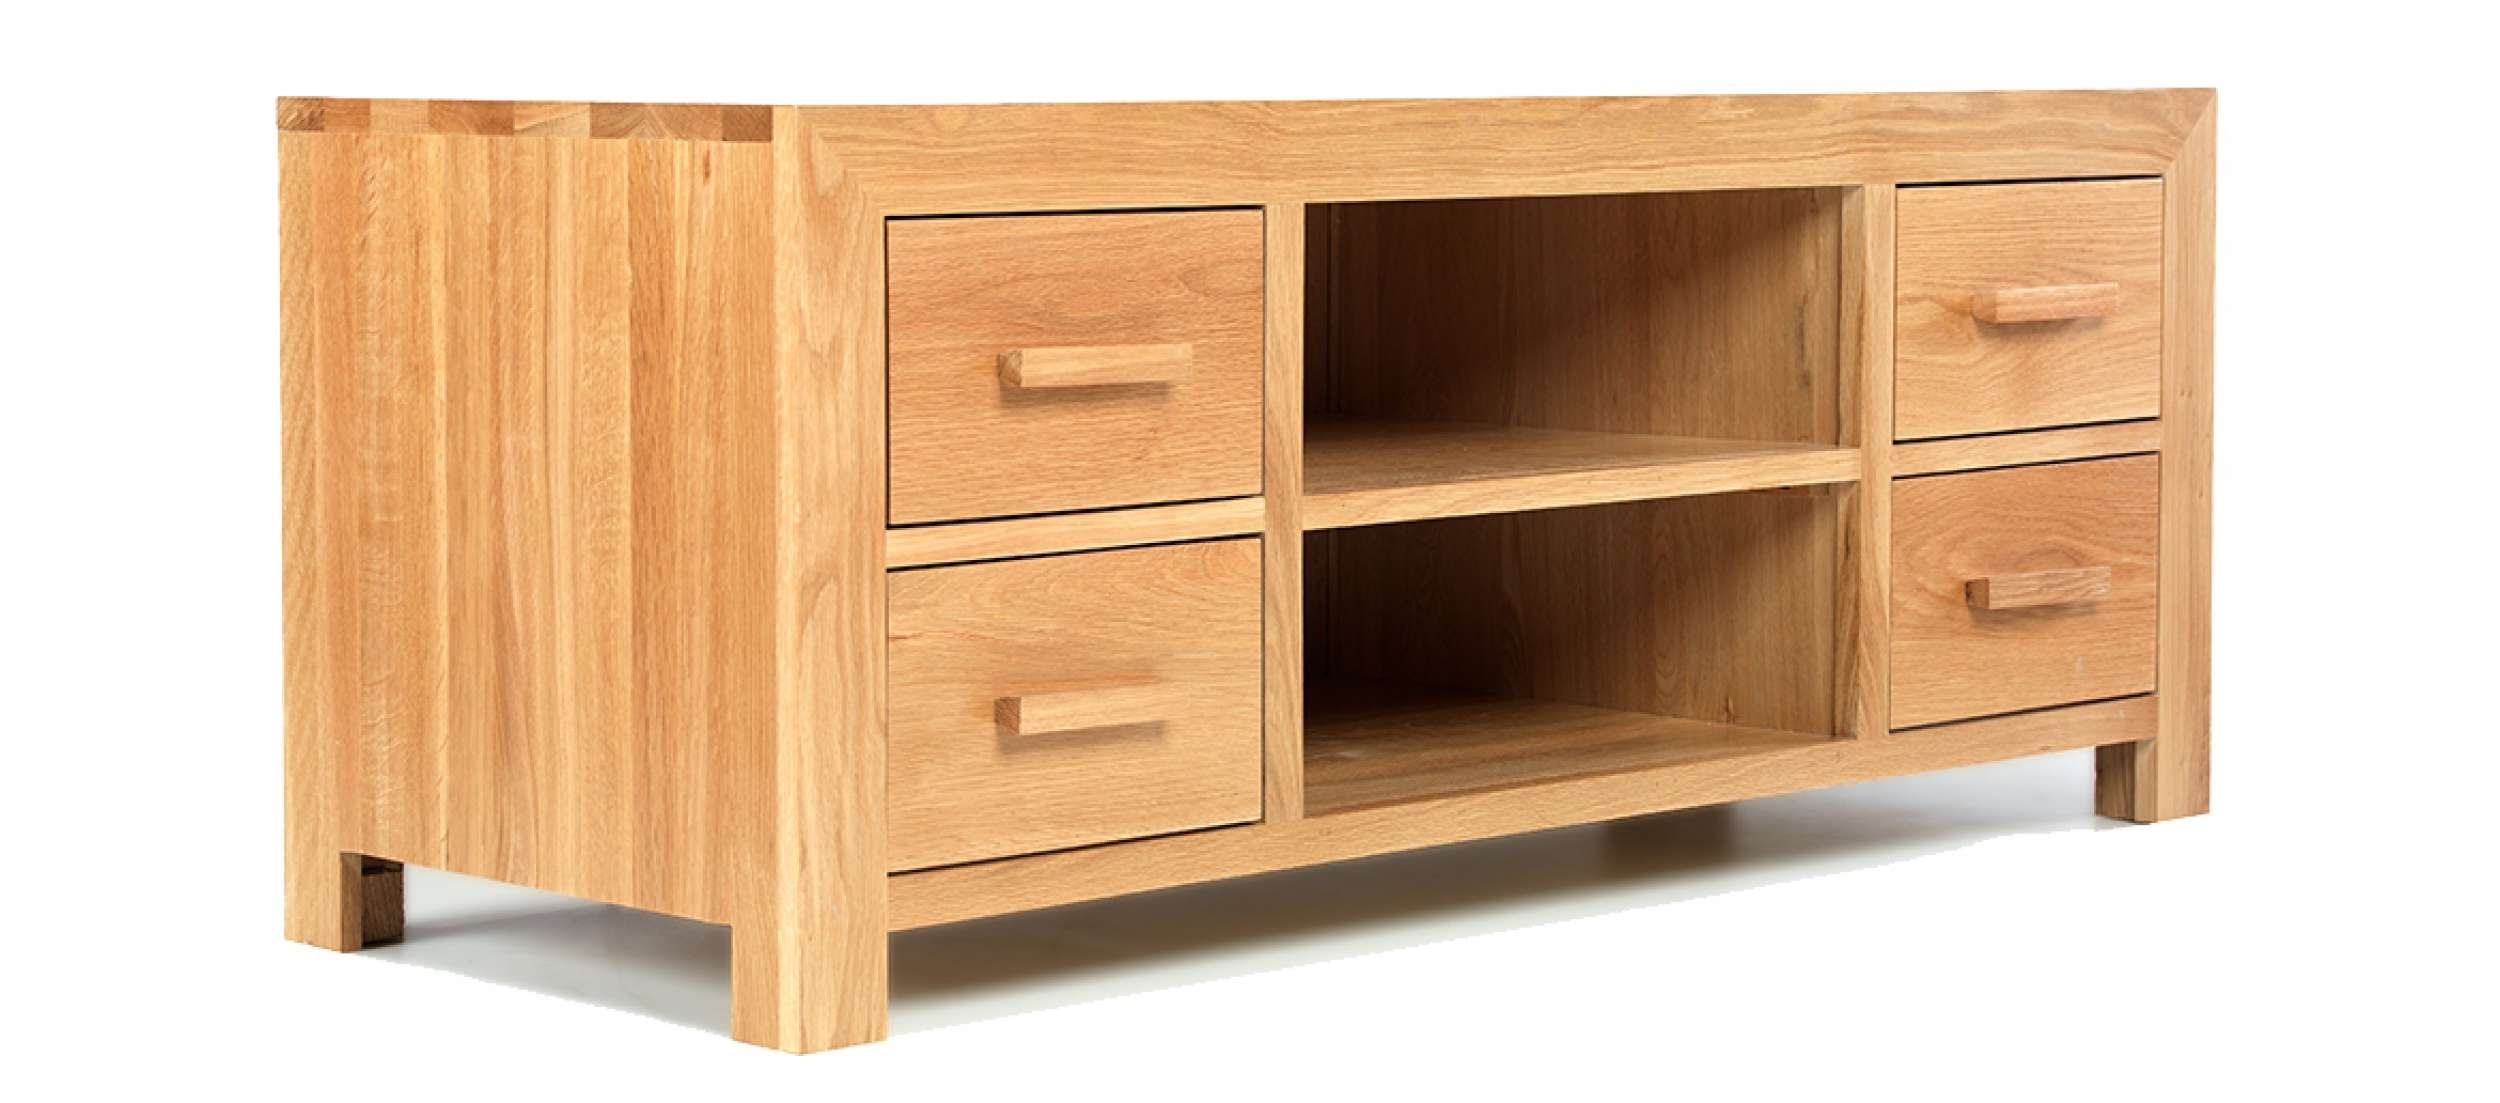 Cube Oak Plasma Tv Stand | Quercus Living With Regard To Solid Oak Tv Cabinets (View 19 of 20)